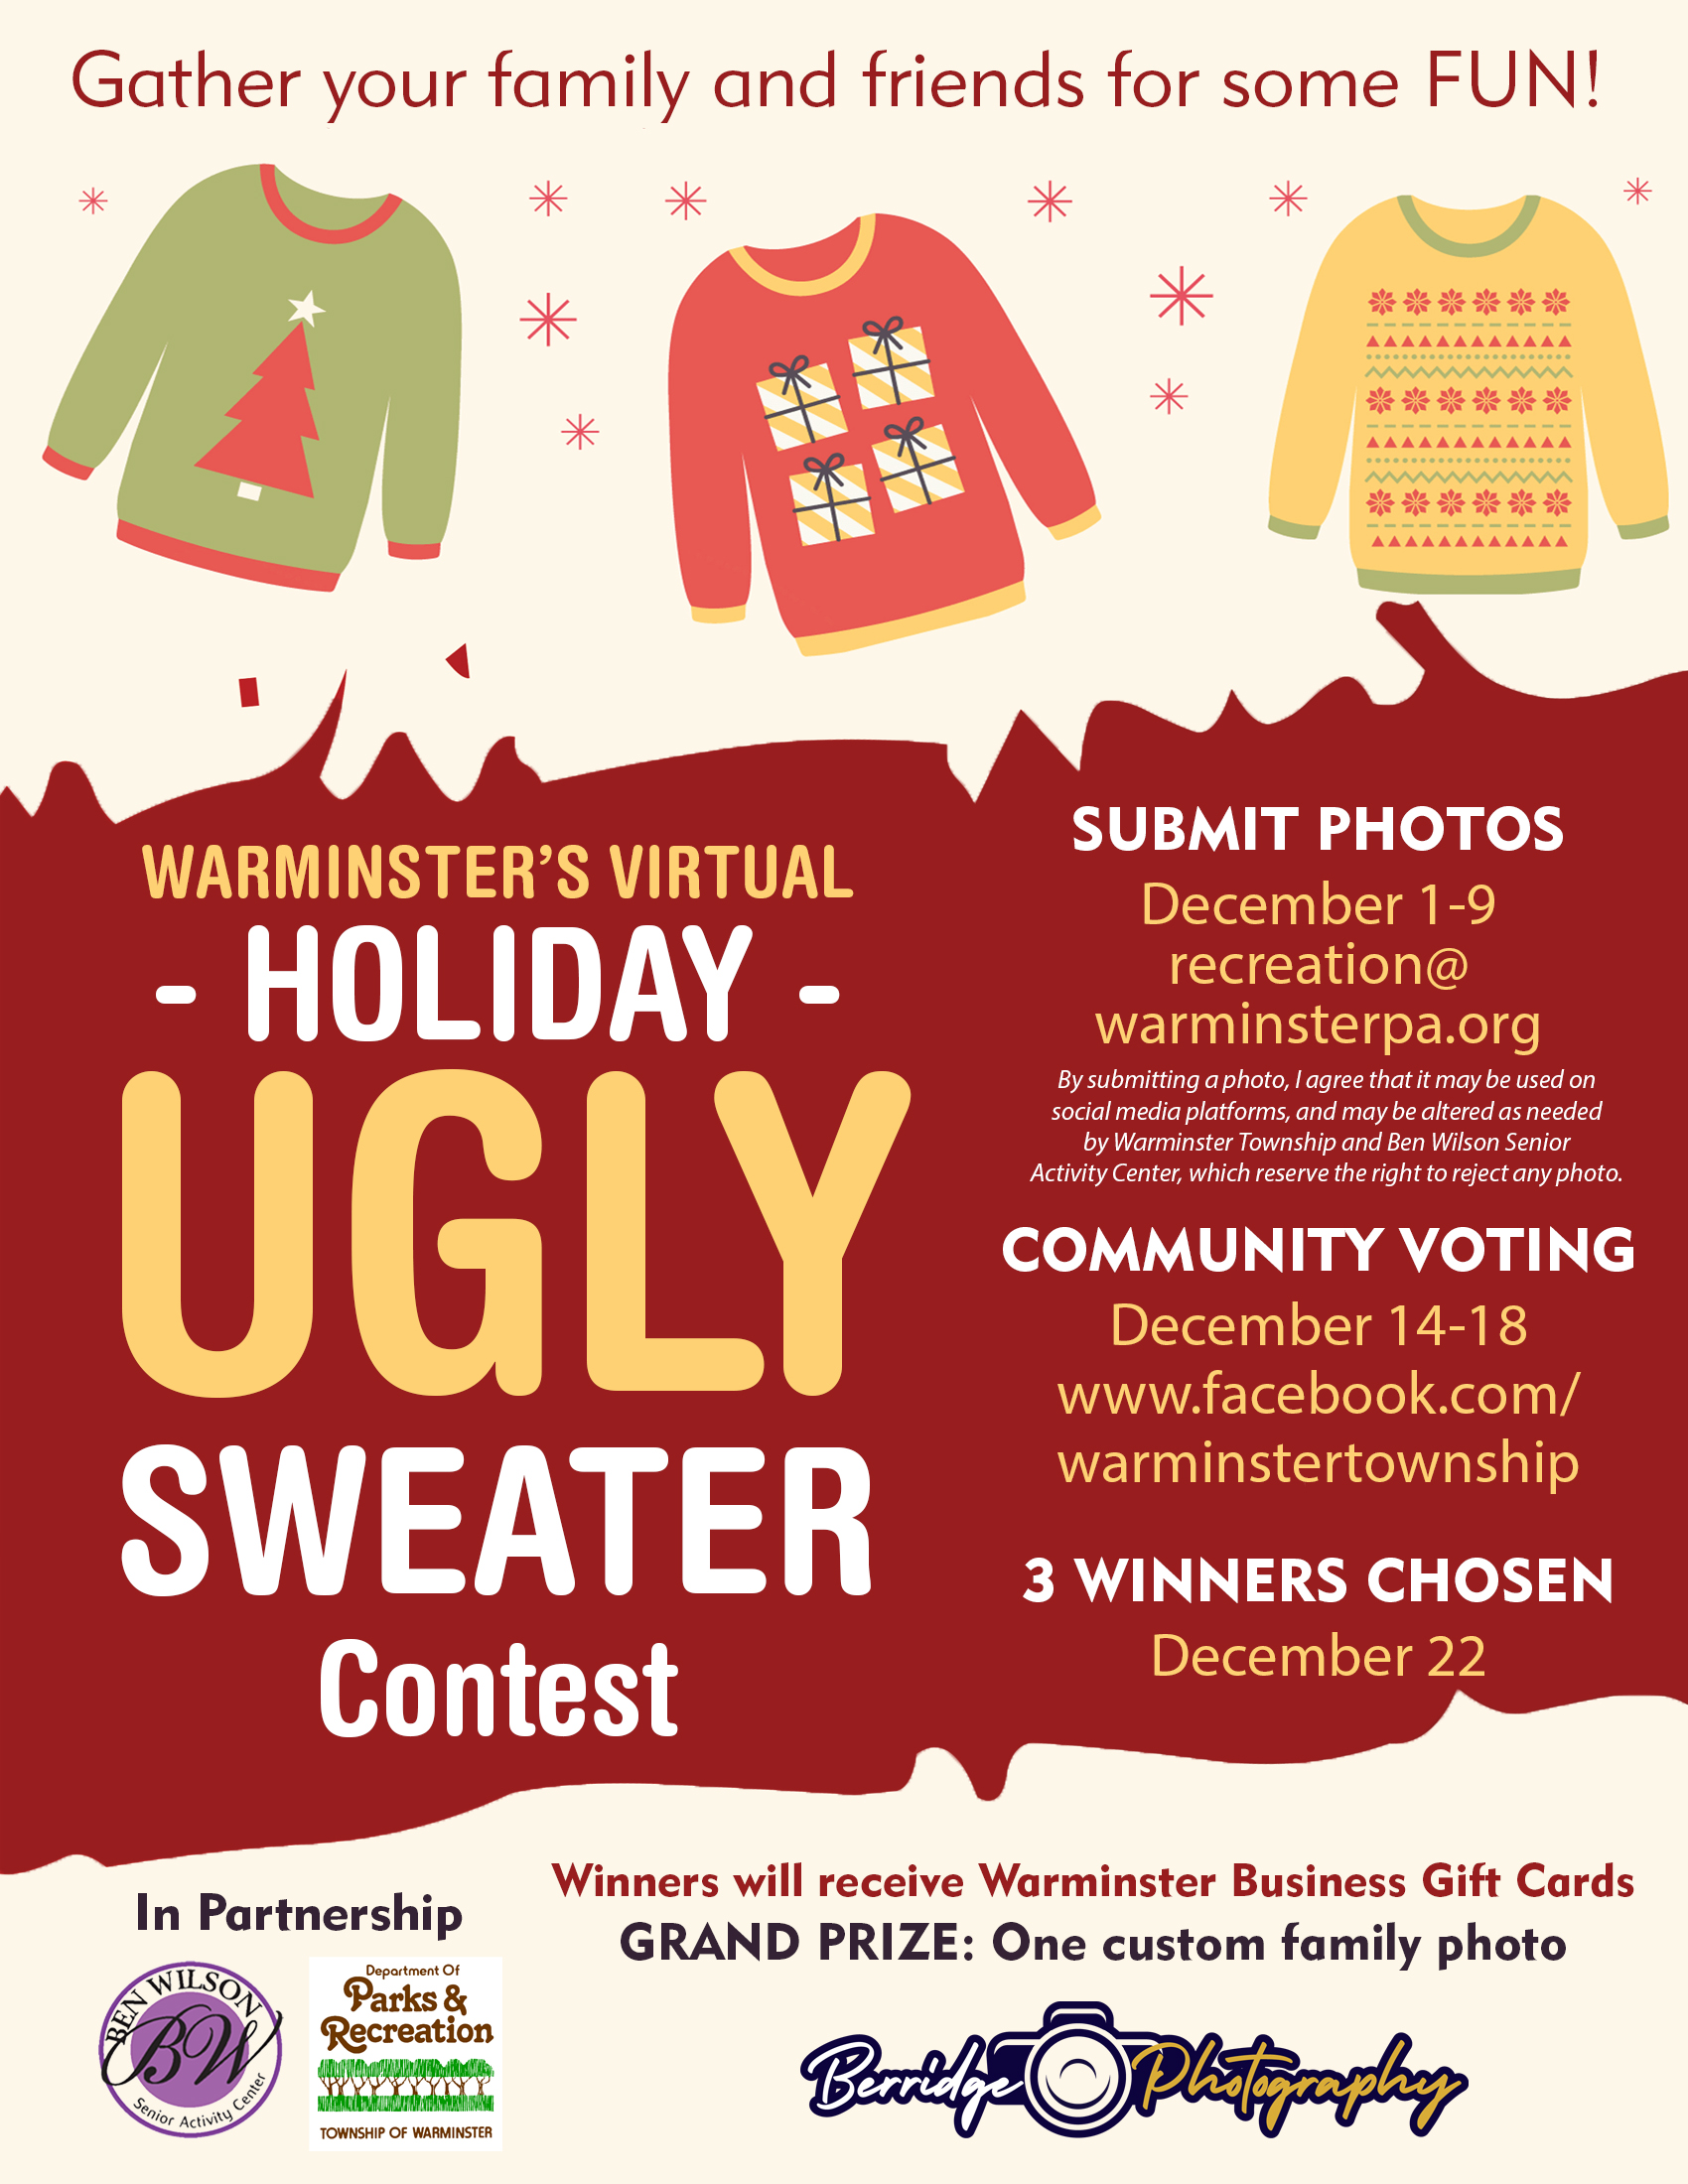 Warminster's Virtual - Holiday - UGLY Sweater Contest